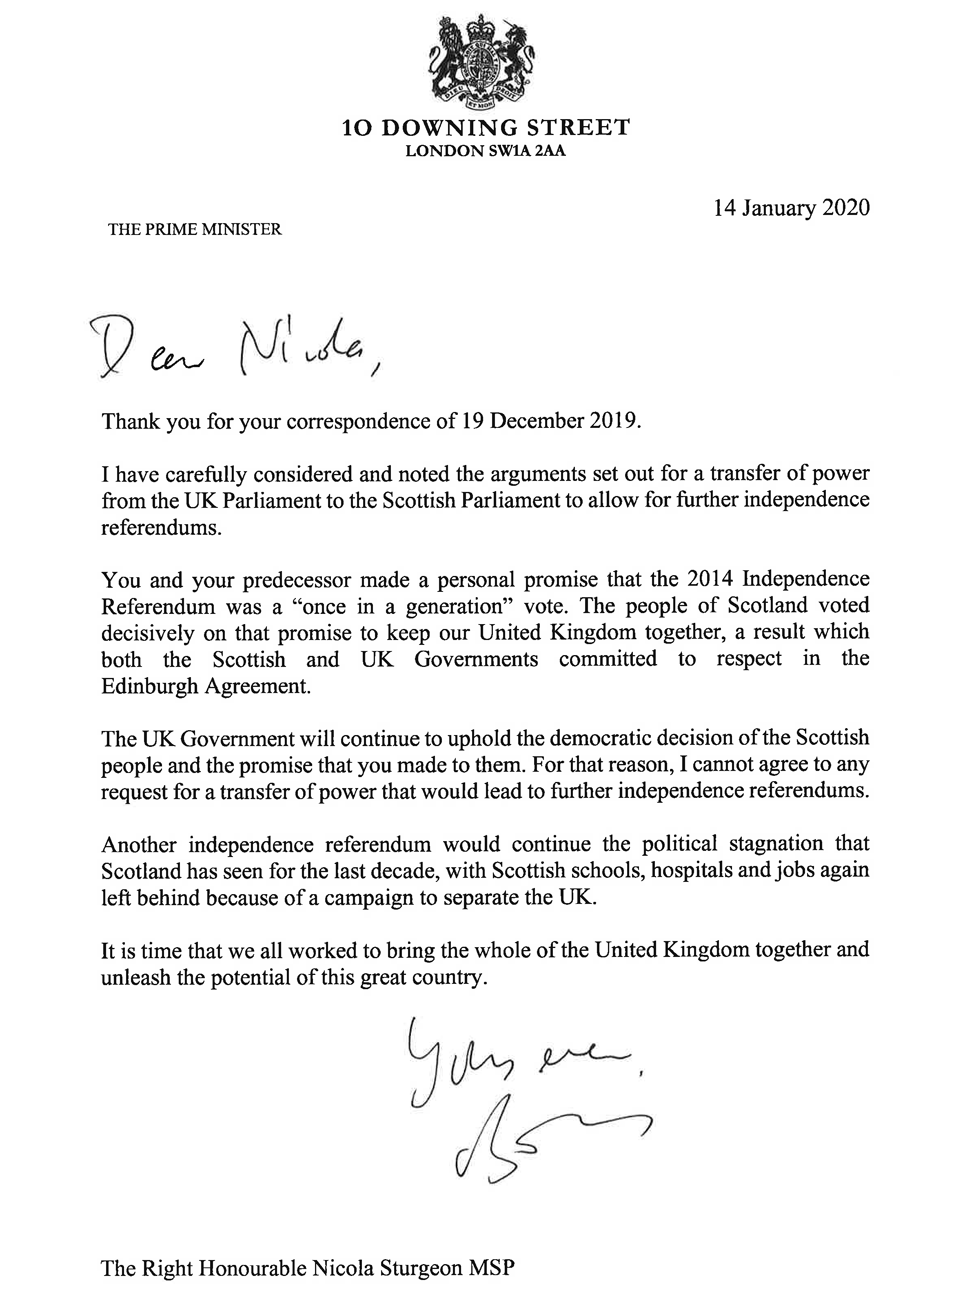 Boris Johnson's letter